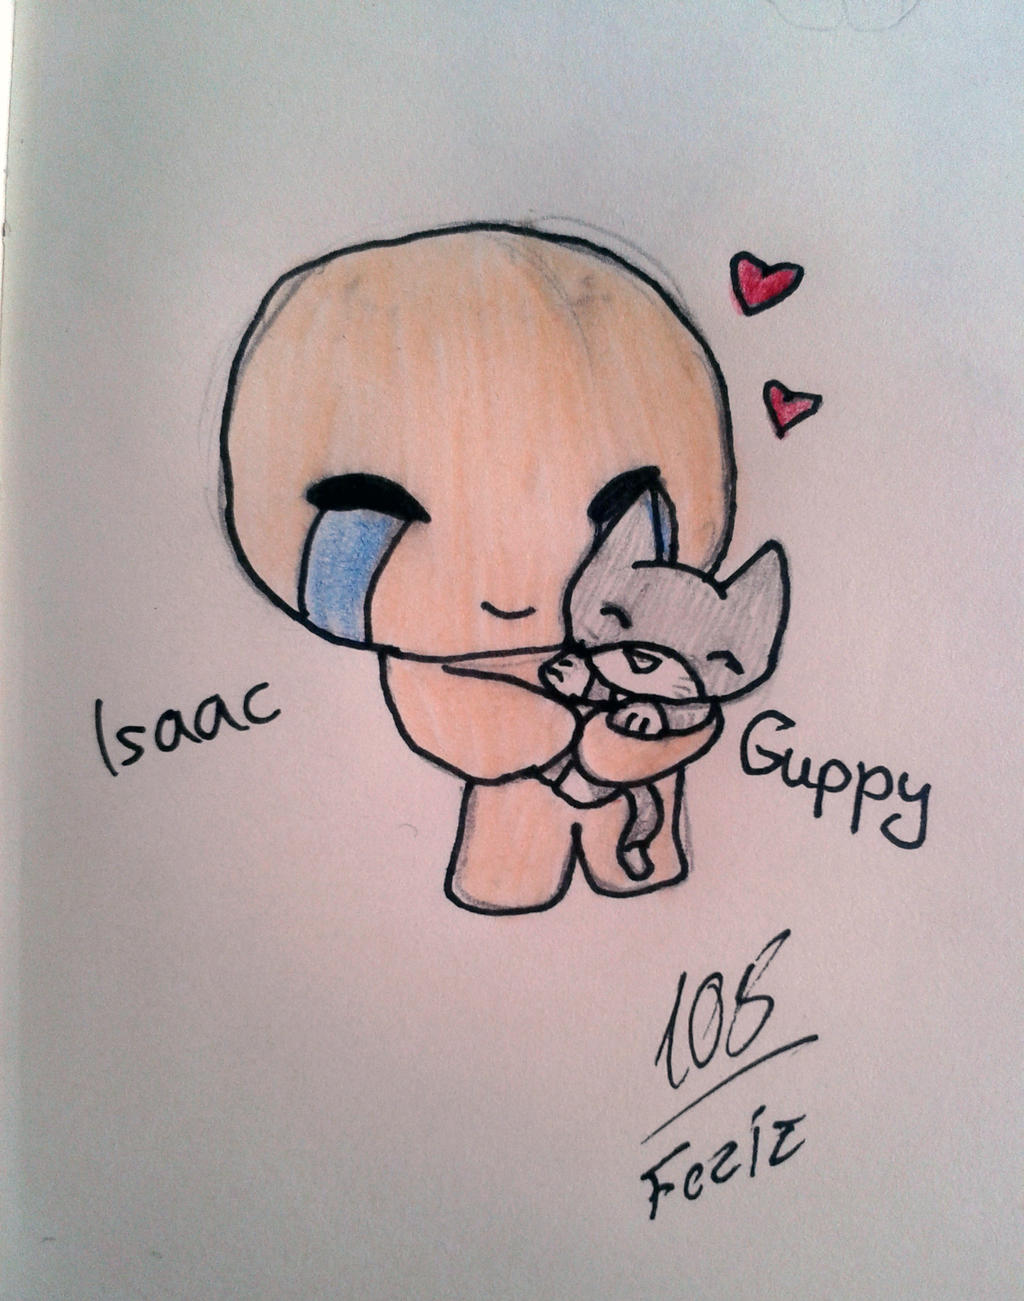 Isaac and Guppy by Foziz105